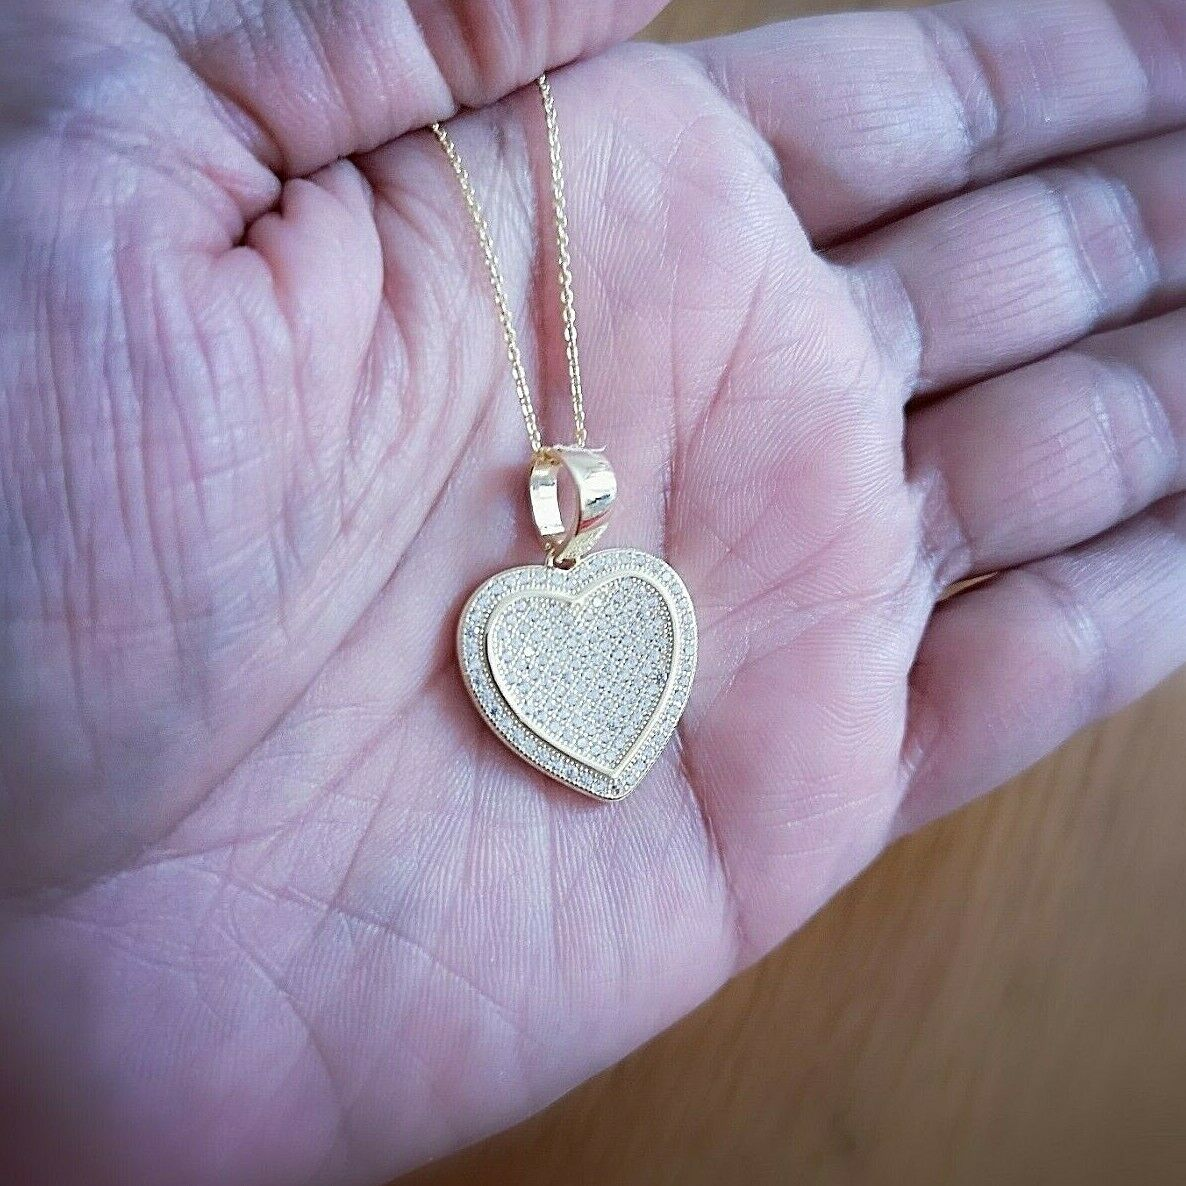 1 Ct Diamond Pendant Womens Necklace Heart Shape in 14K Yellow Gold over Chain 3